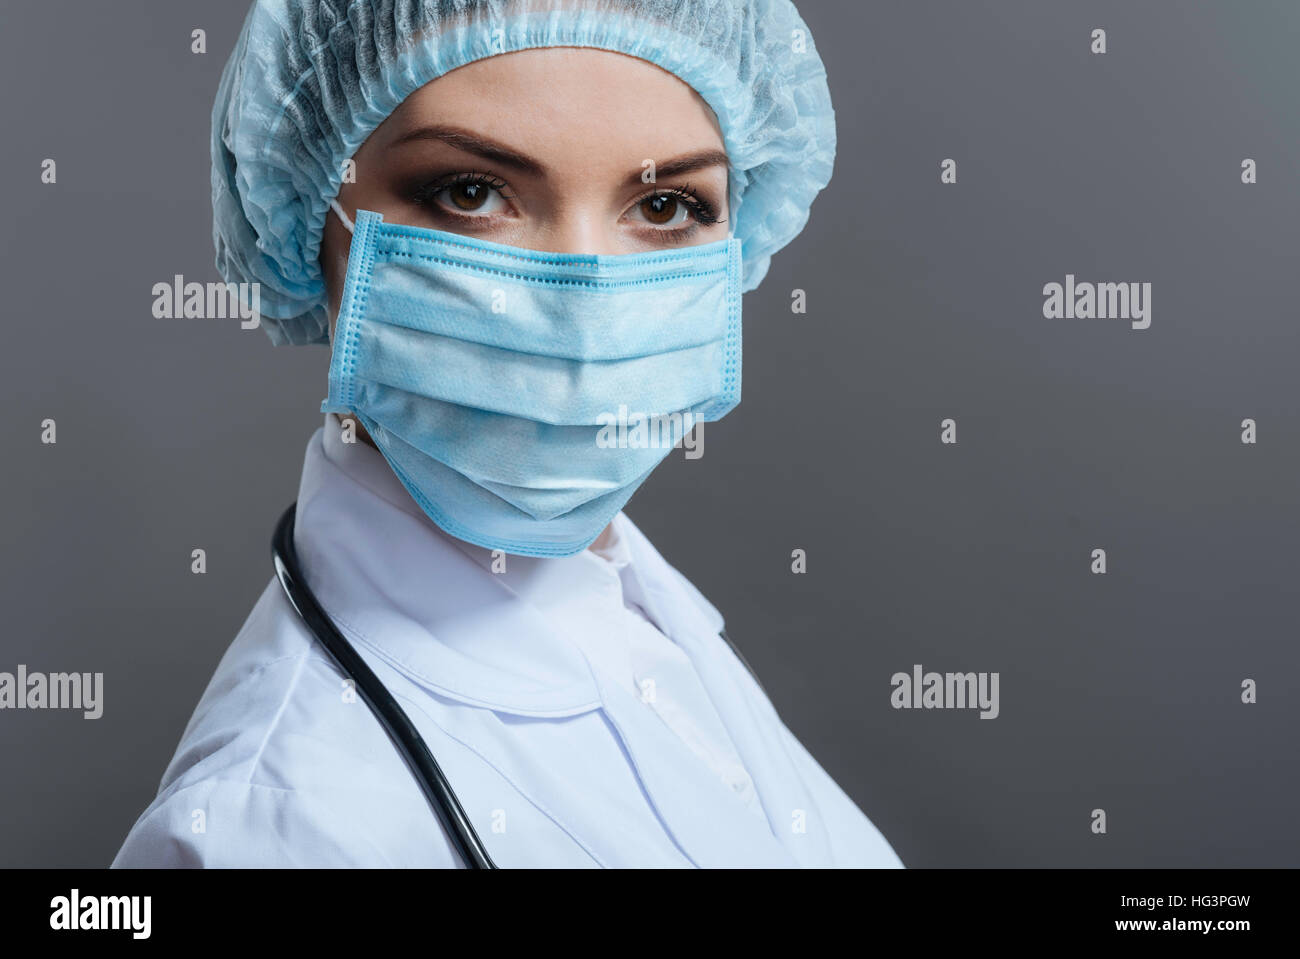 Female doctor gesturing on grey background - Stock Image